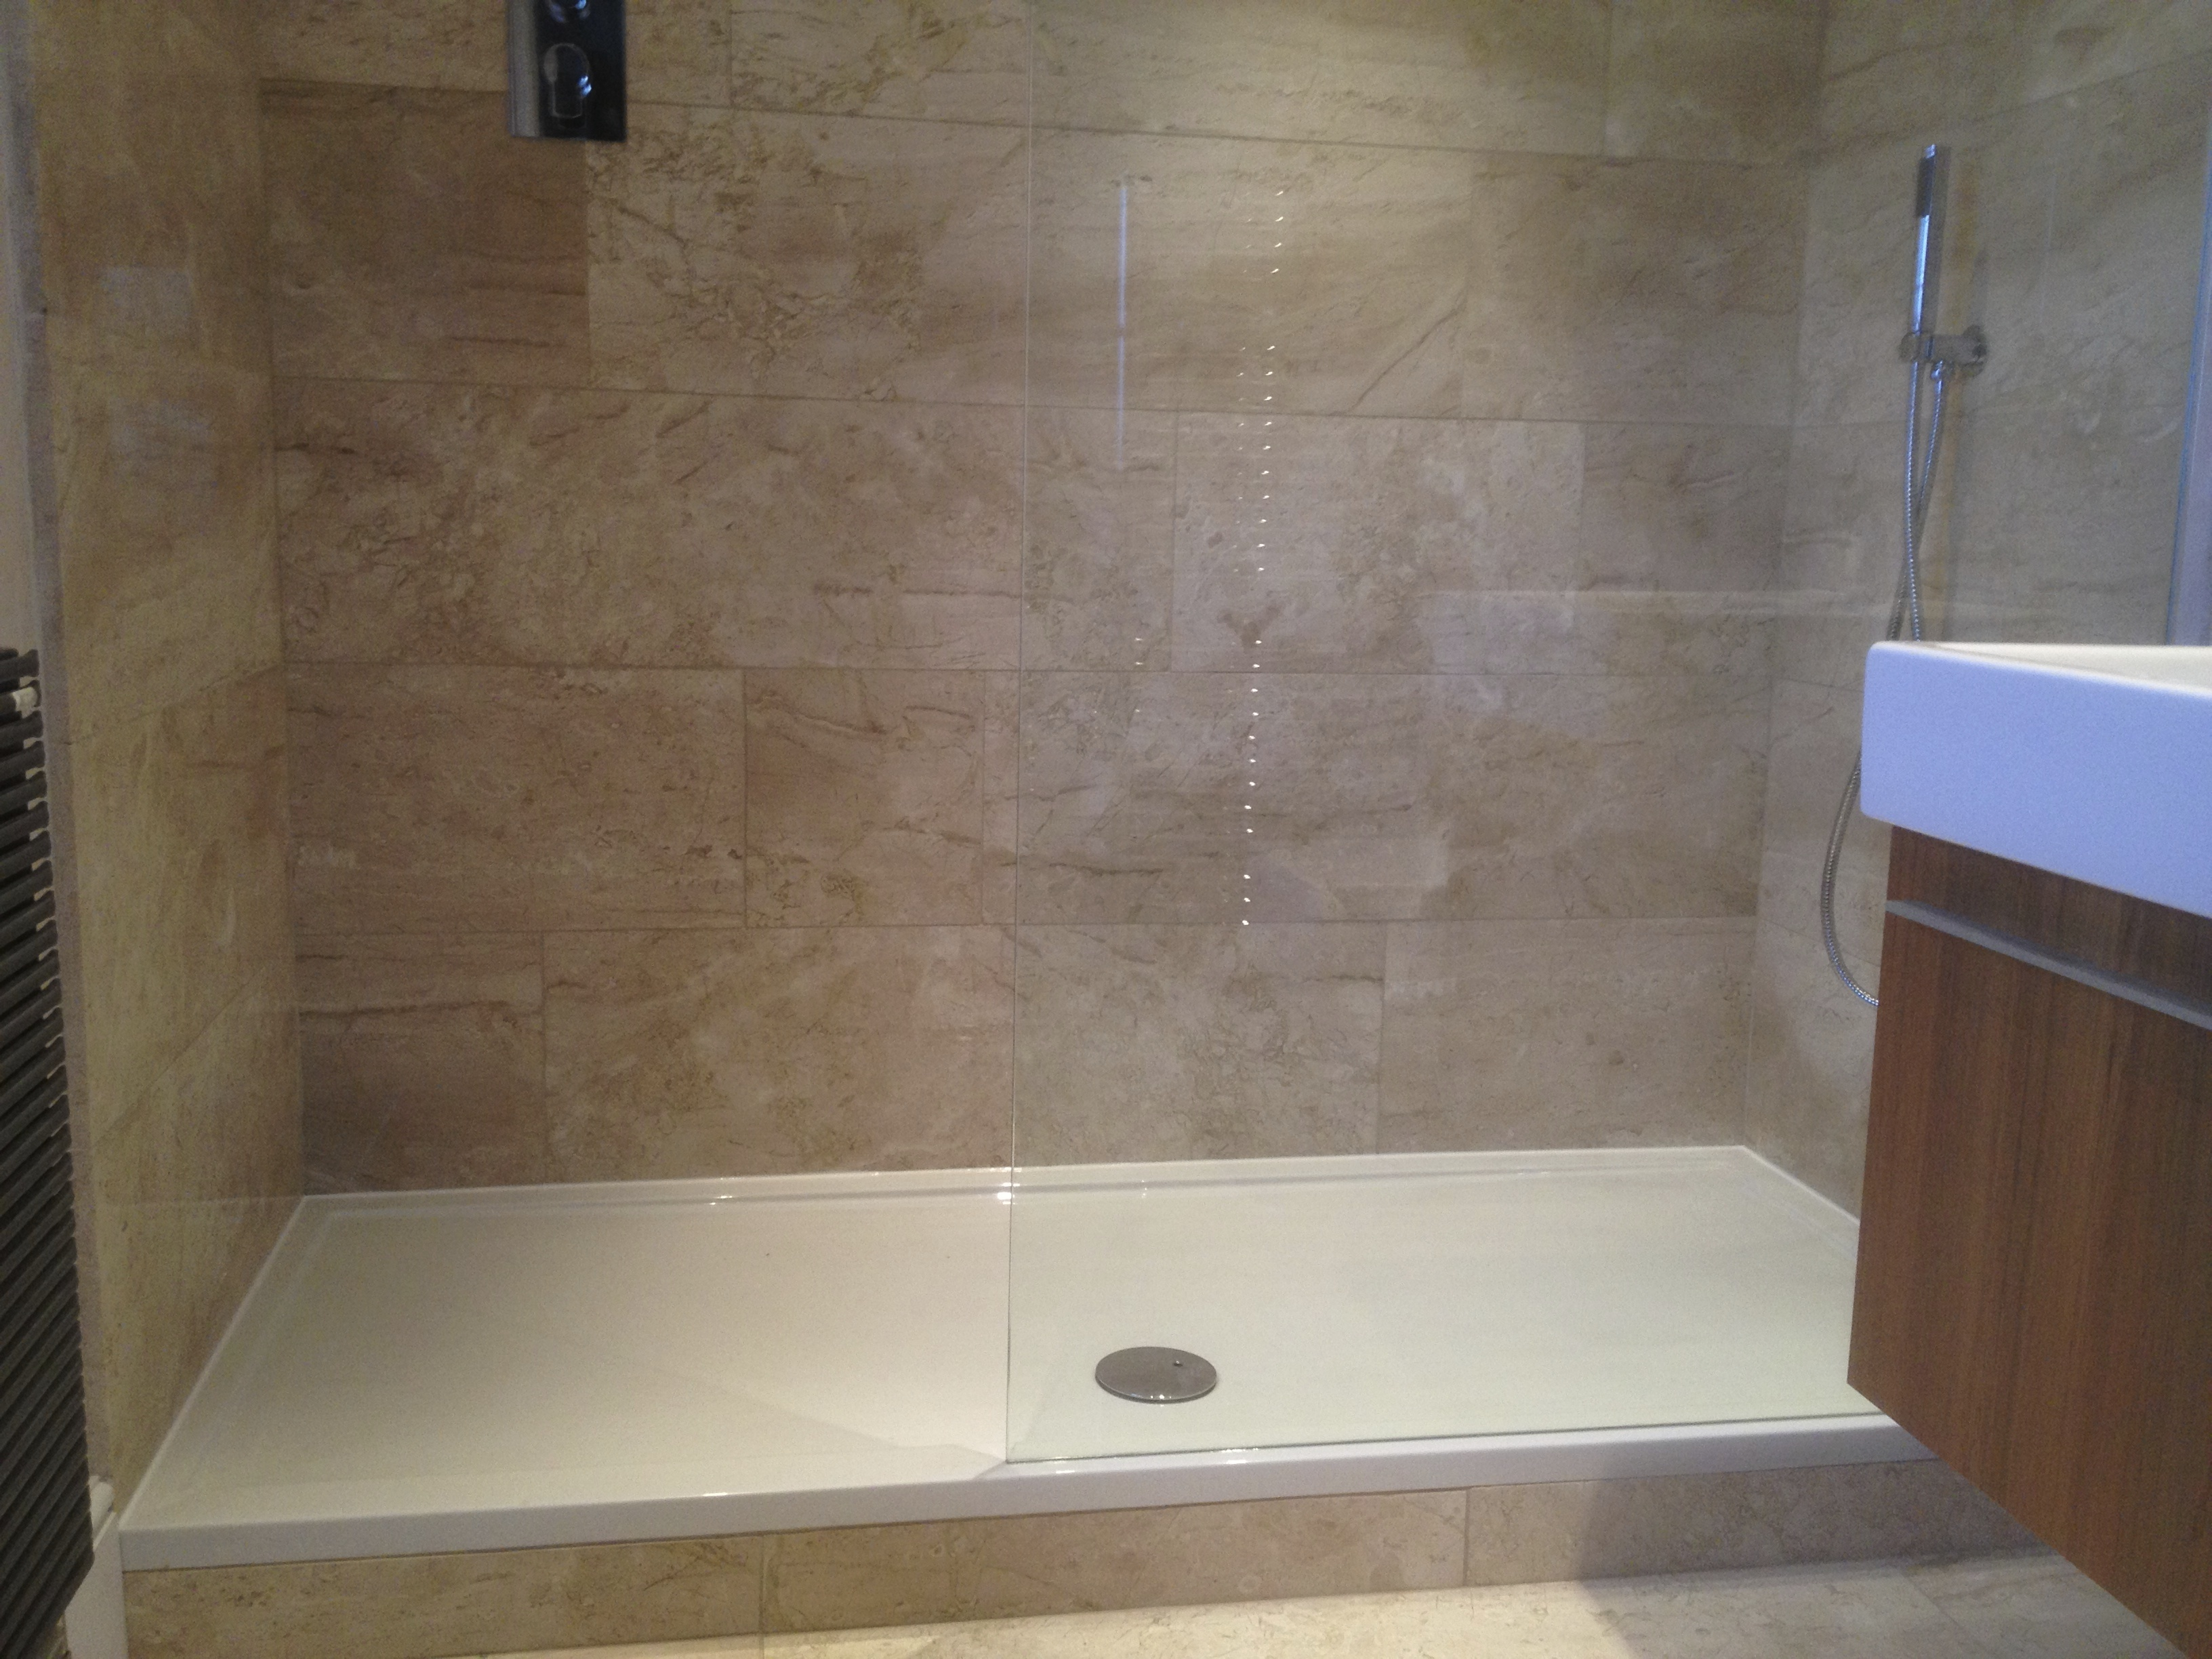 Malton Plumber Installs Walk In Shower Ensuite Paul